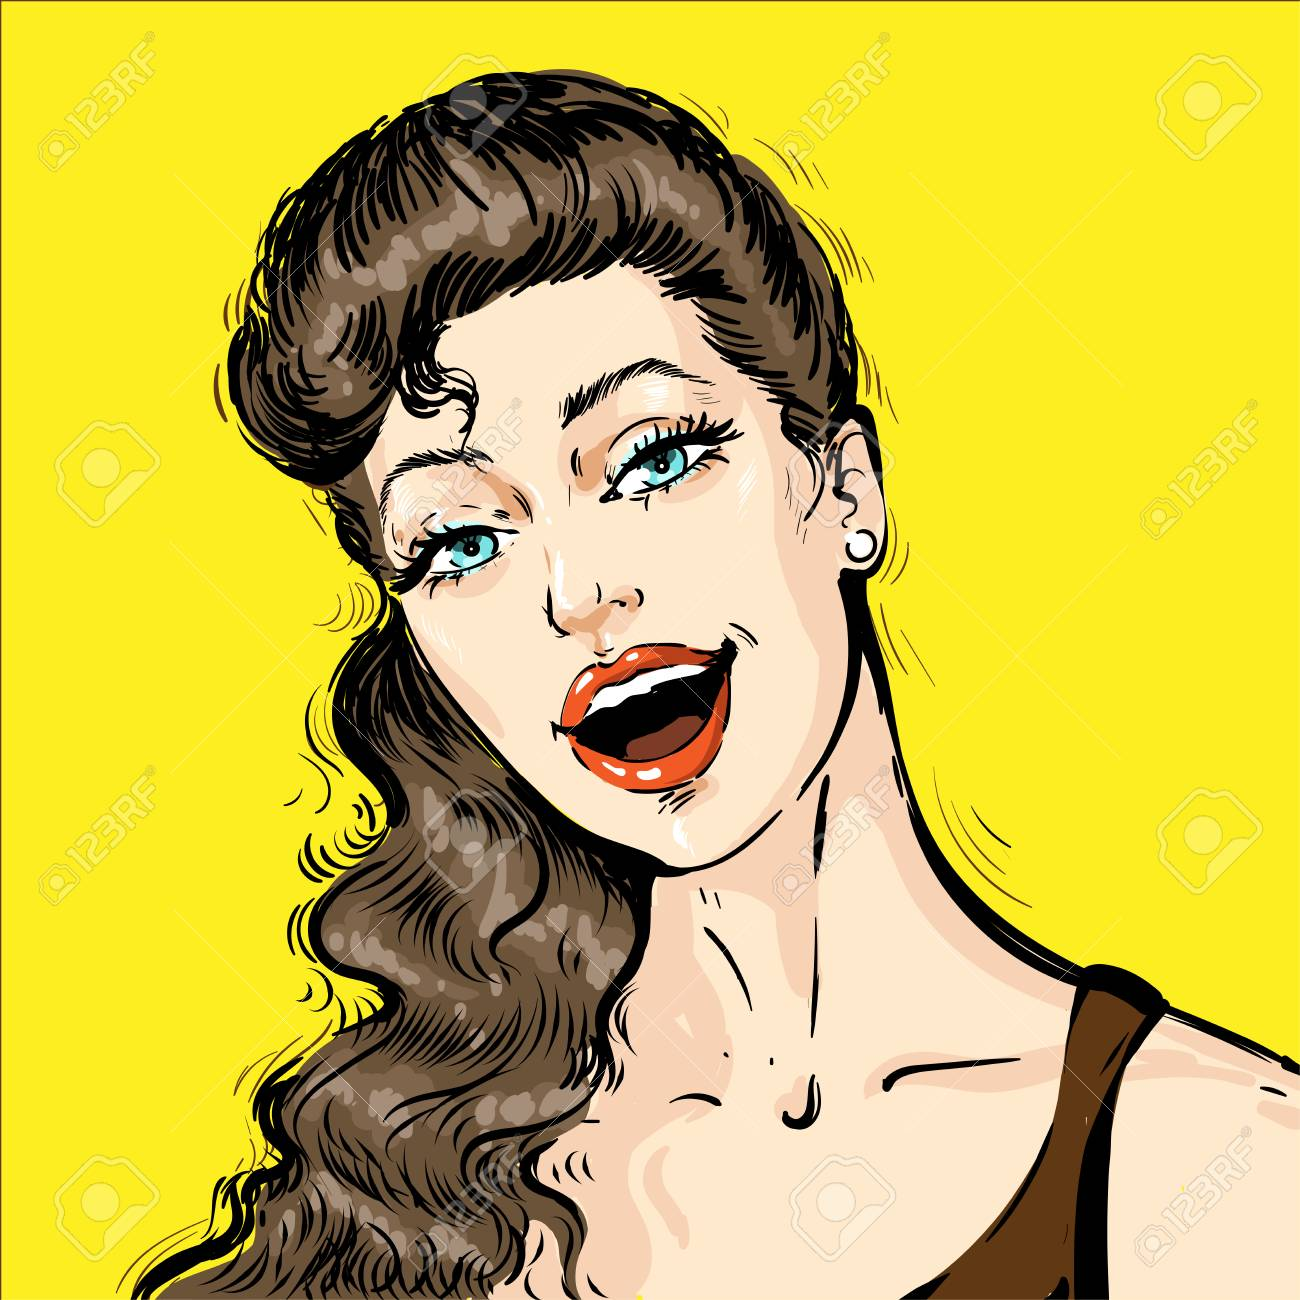 Portrait Of A Beautiful Young Woman With Open Mouth Talking Royalty Free Cliparts Vectors And Stock Illustration Image 124947984